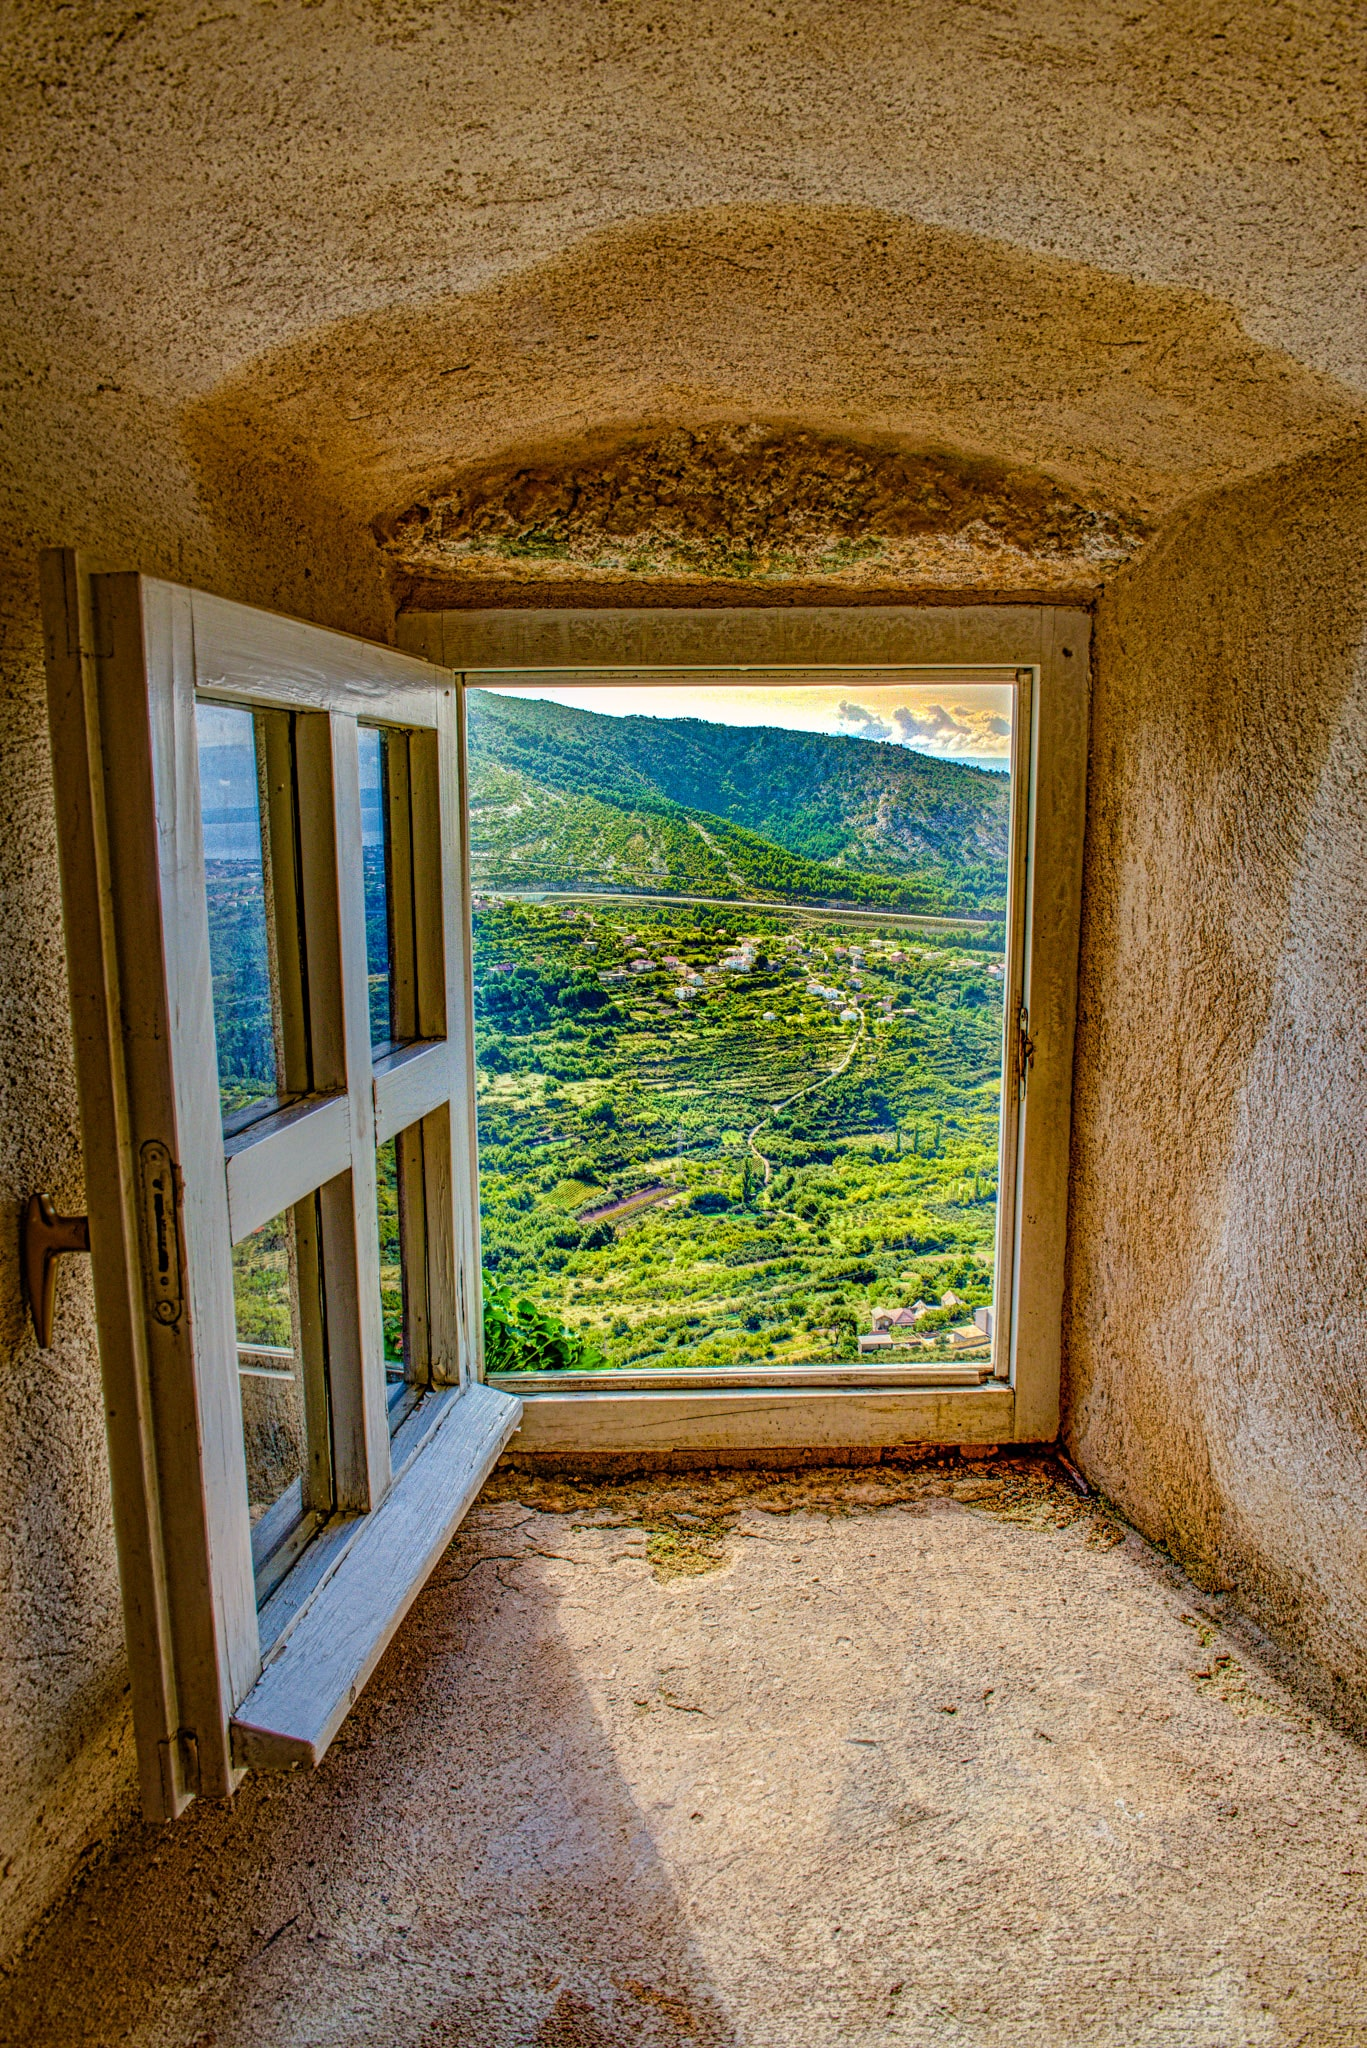 A view of the country side as seen through a window in the House of Dux of Klis Fortress near the Croatian city of Split.